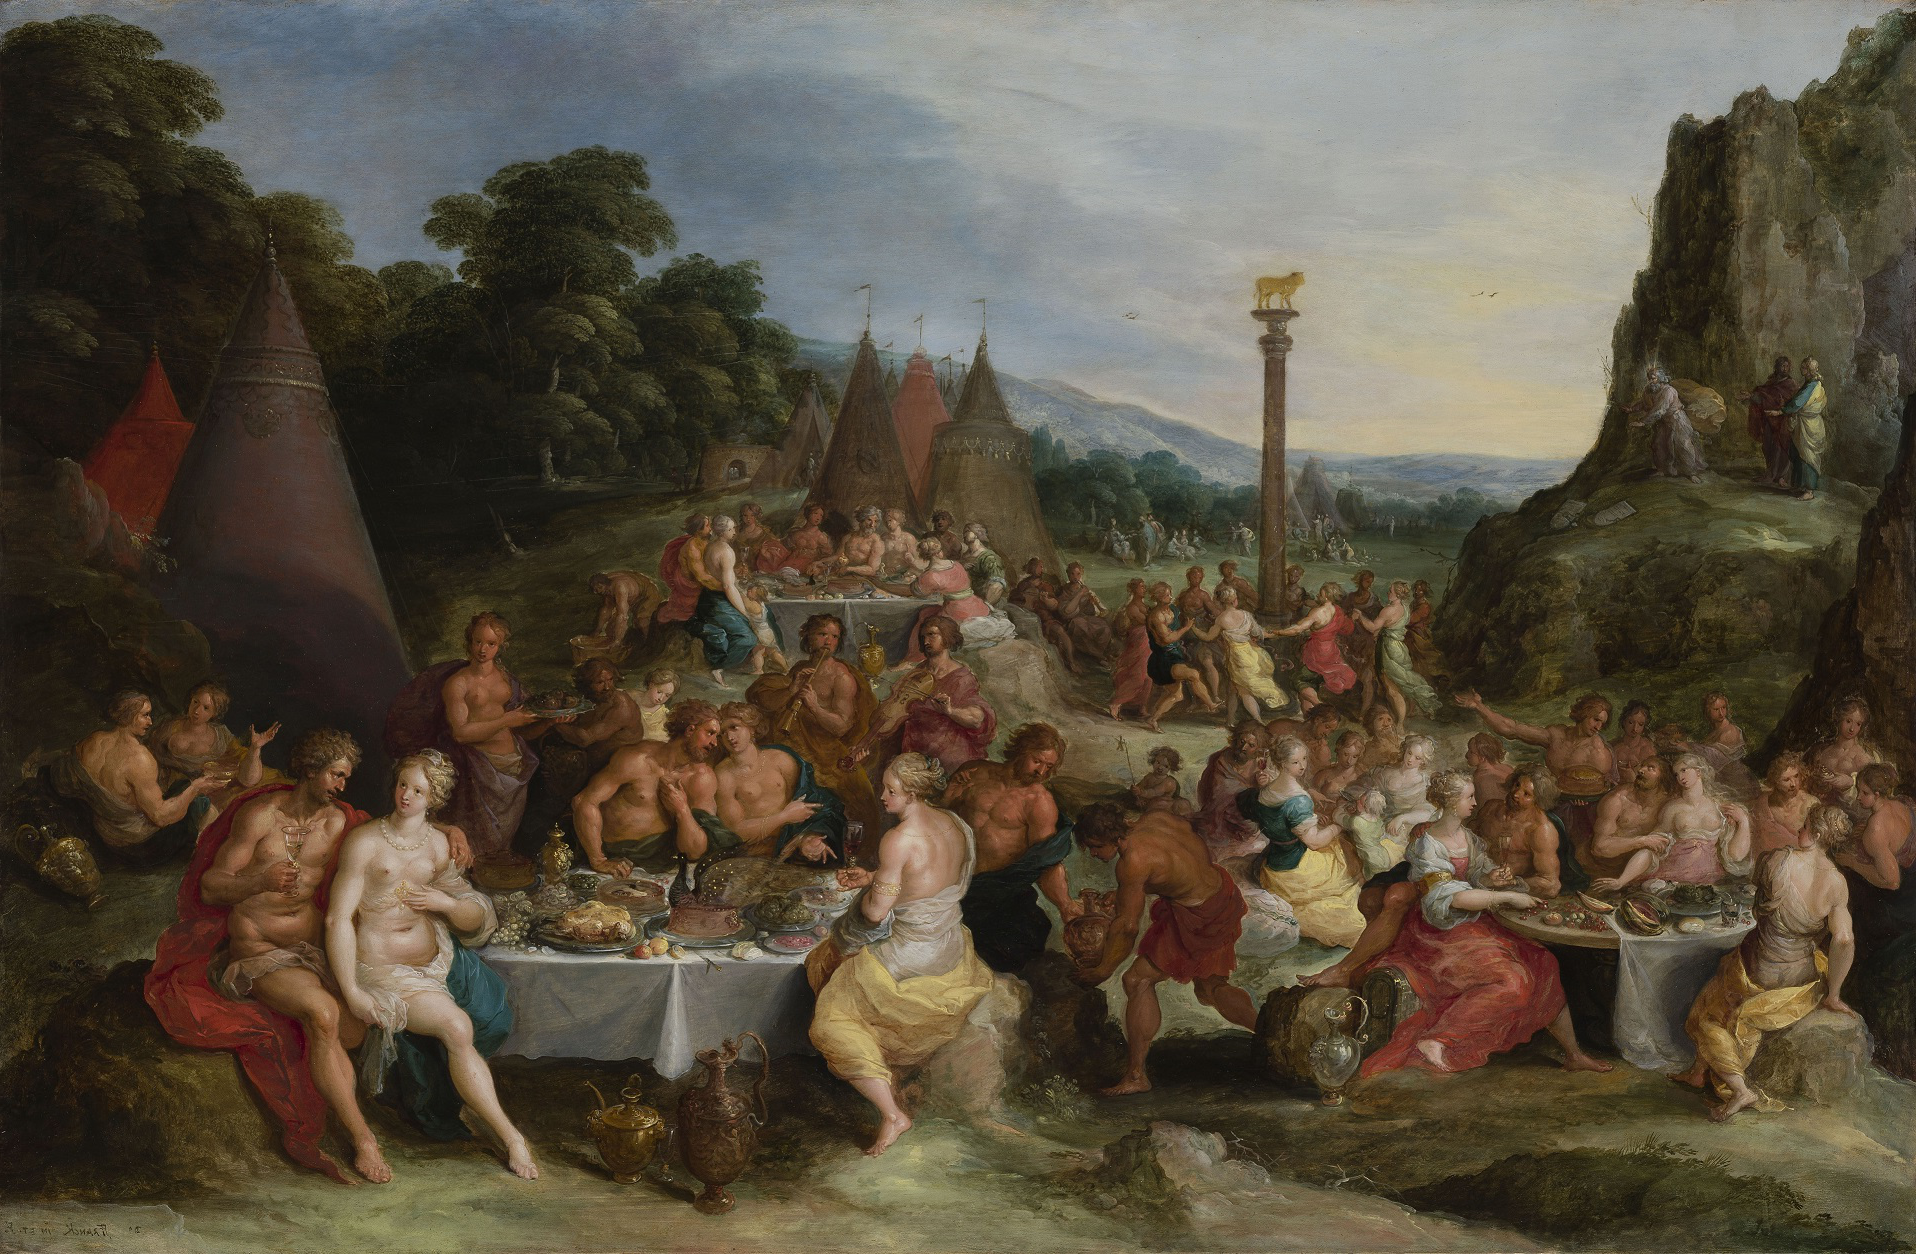 崇拜金牛犊 通过弗兰斯Francken雅戈尔 c.1630-35, oil on panel. The theme of abundance is central to this painting and others which inspired the exhibition's historical recreation of a Baroque feasting table.